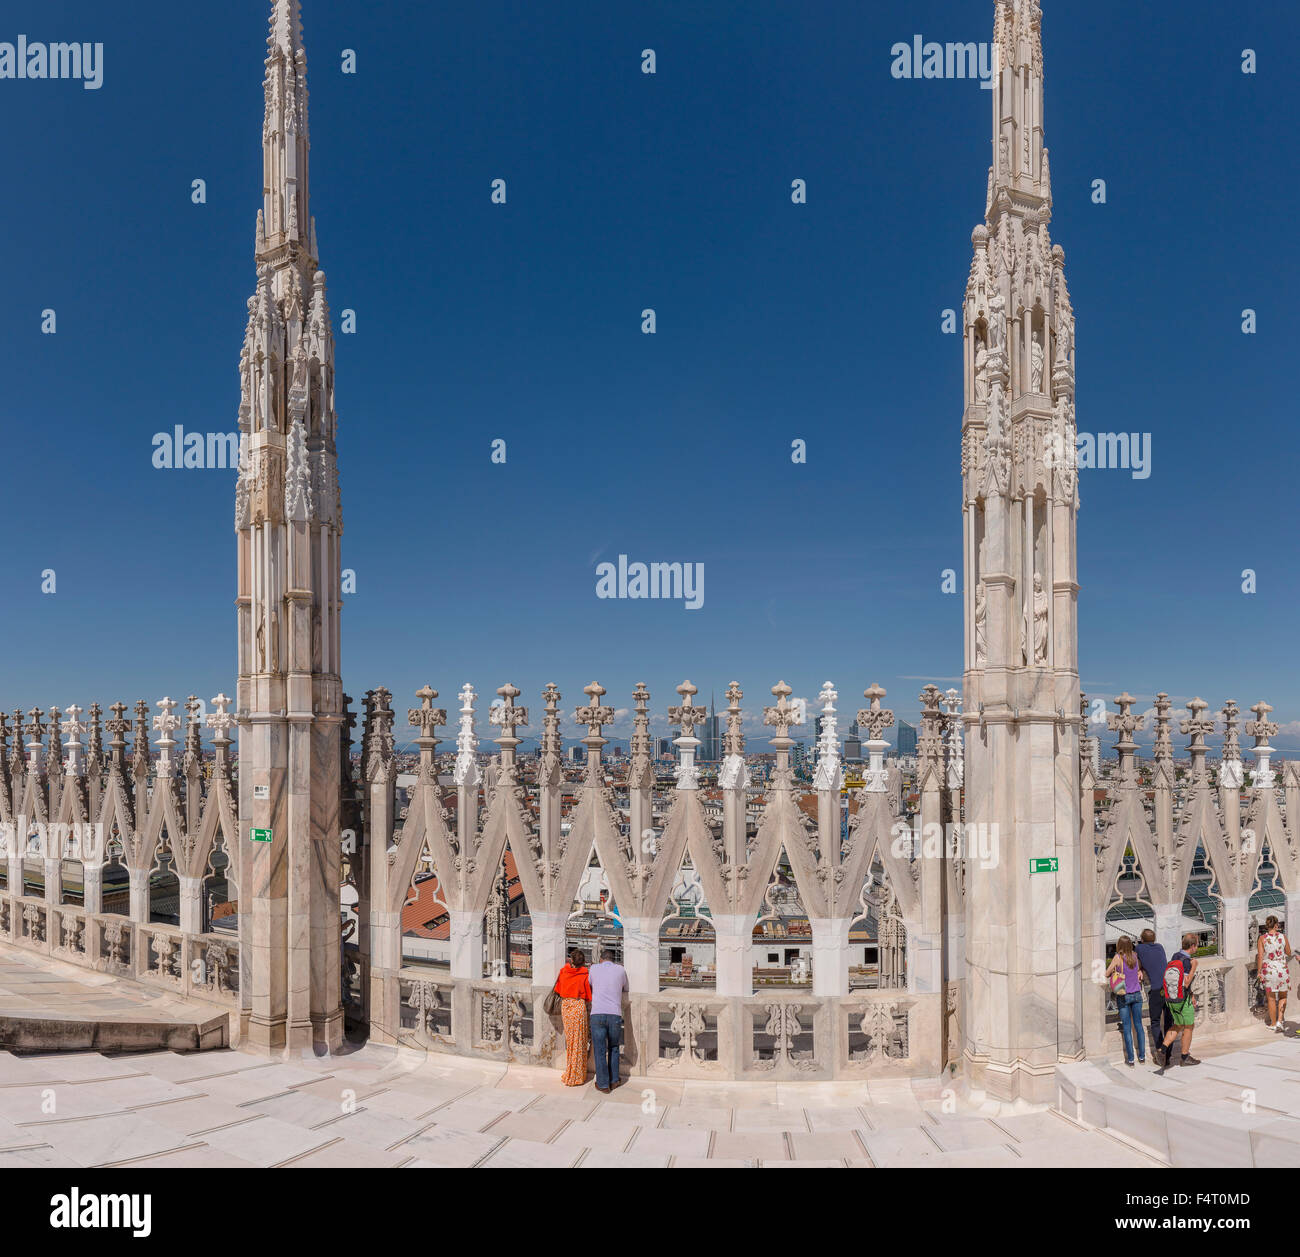 Italy, Europe, Milano, Lombardy, View, rooftop, Duomo di Milano, dome, city, summer, people, - Stock Image